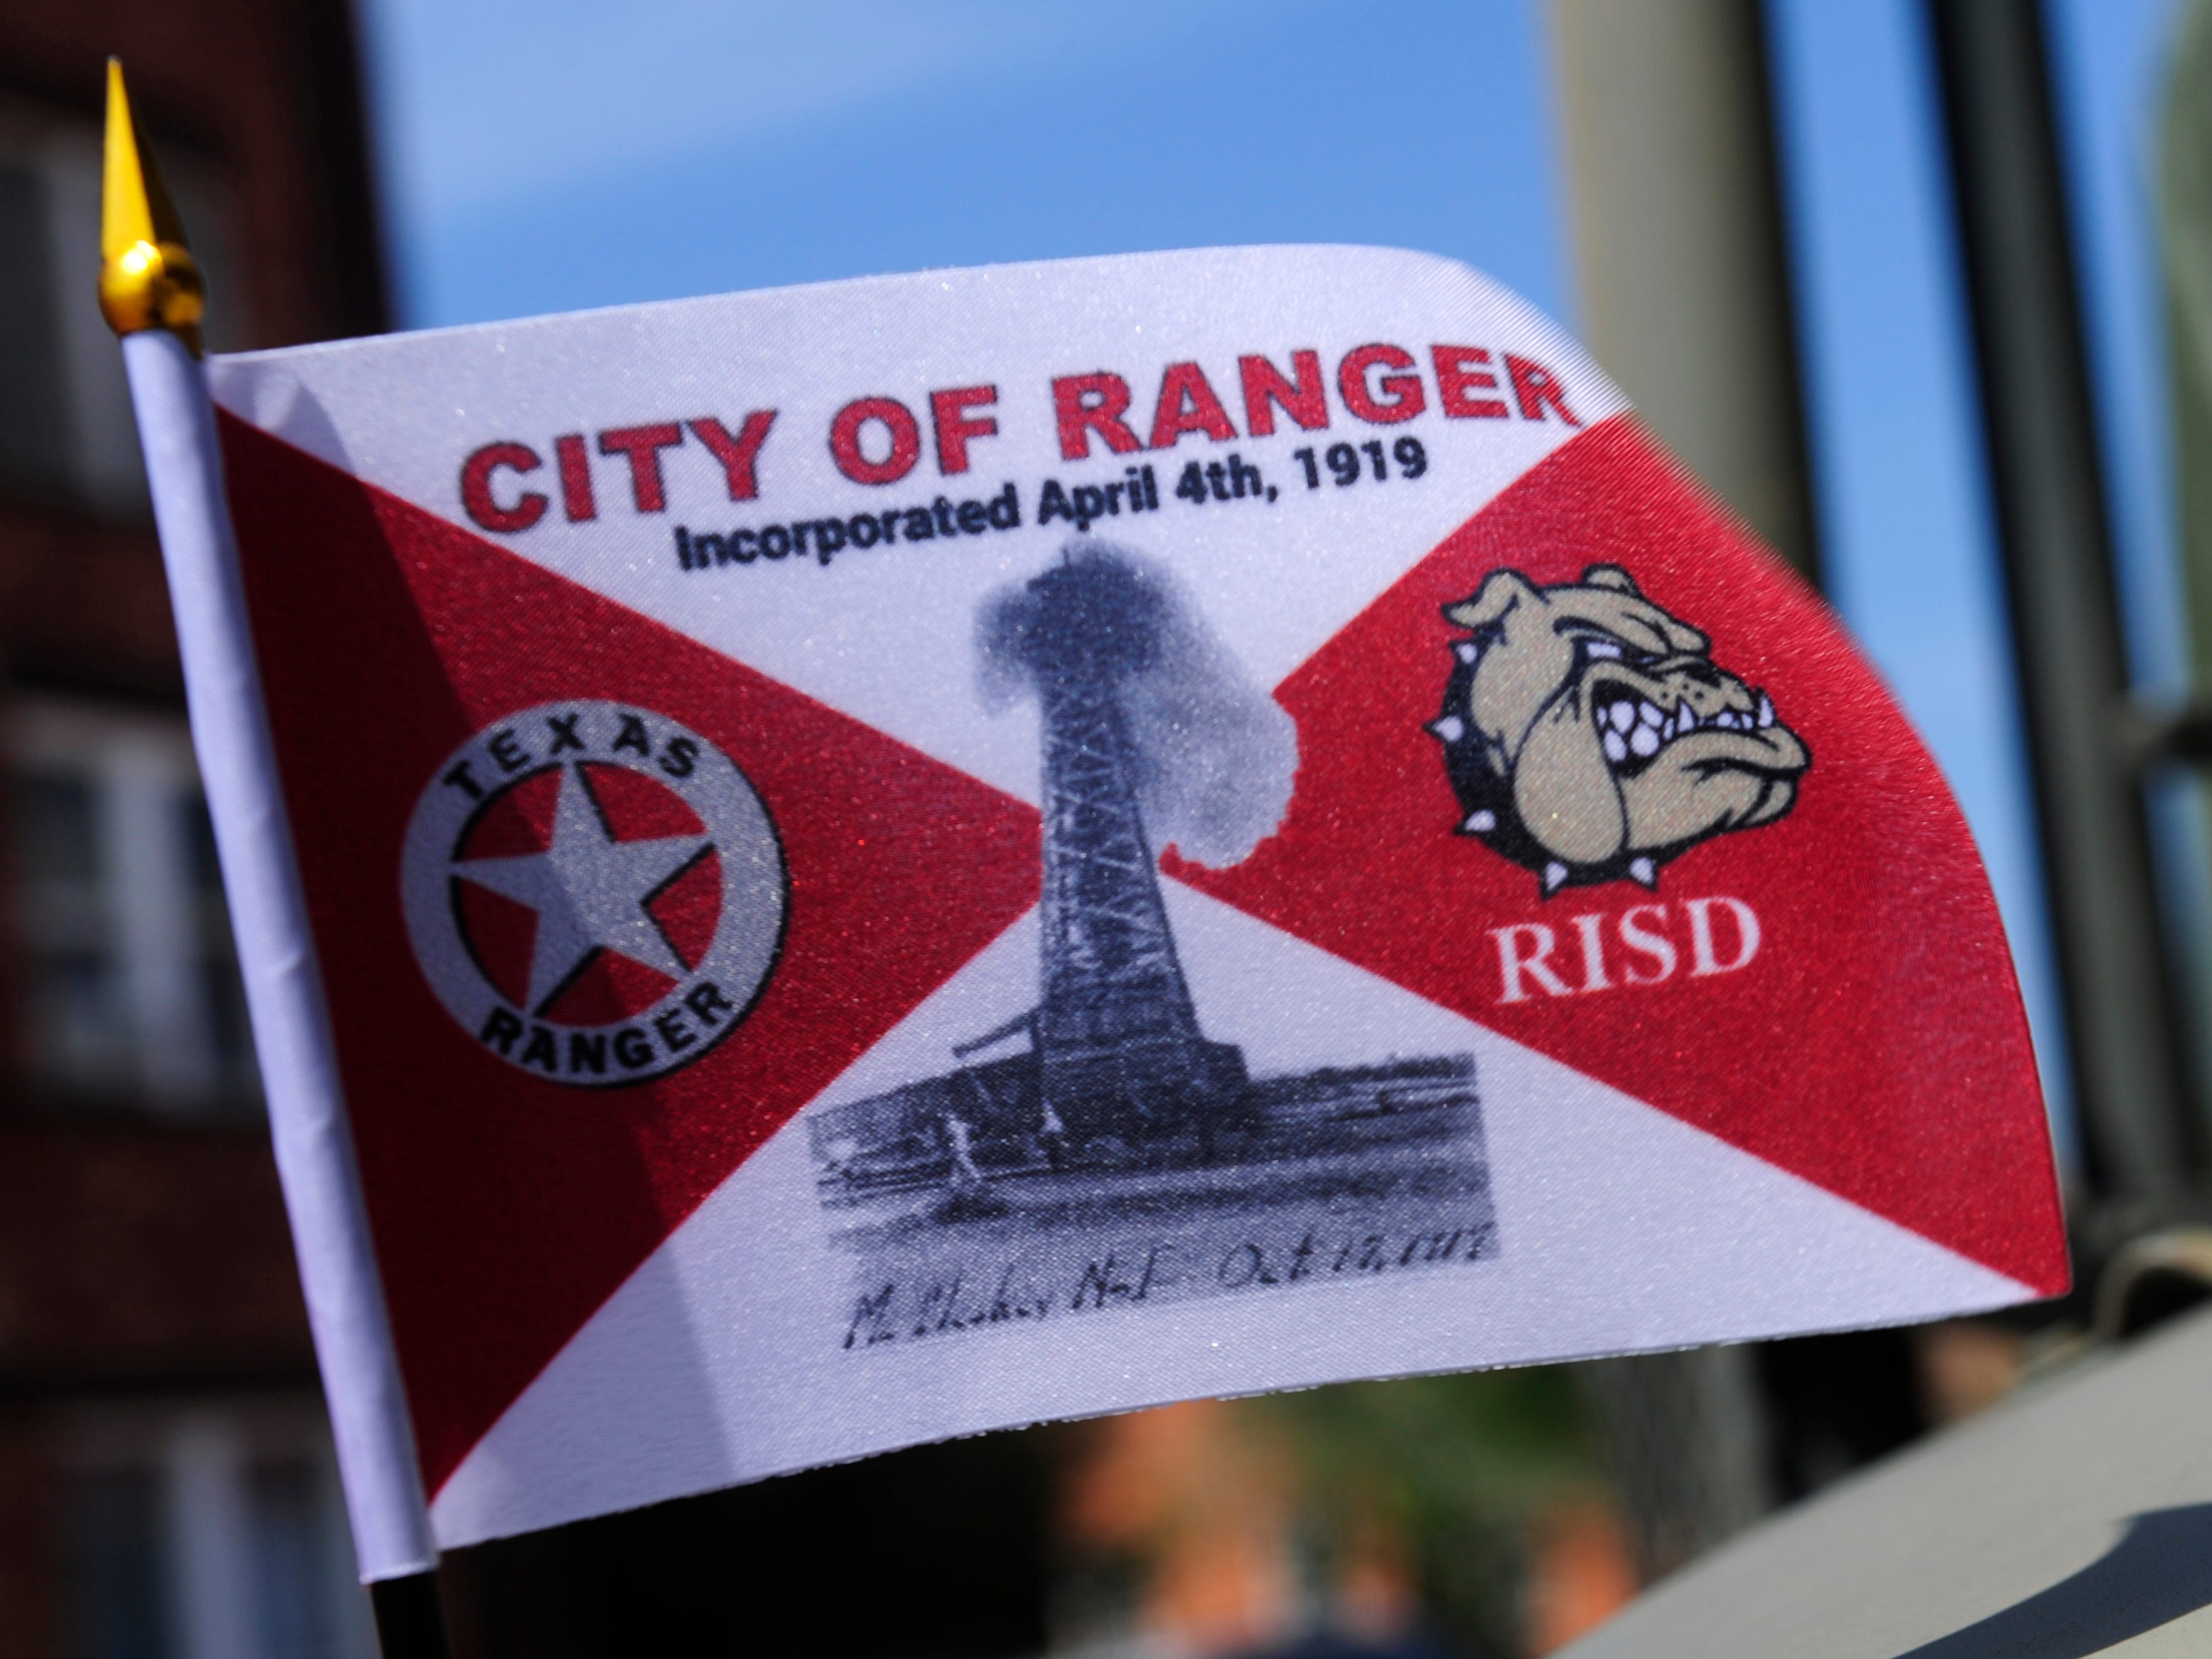 LilliyAna Hernandez' winning flag design, mounted on a military truck after Saturday's parade in Ranger April 6, 2019. The city over the weekend celebrated 100 years since its incorporation.